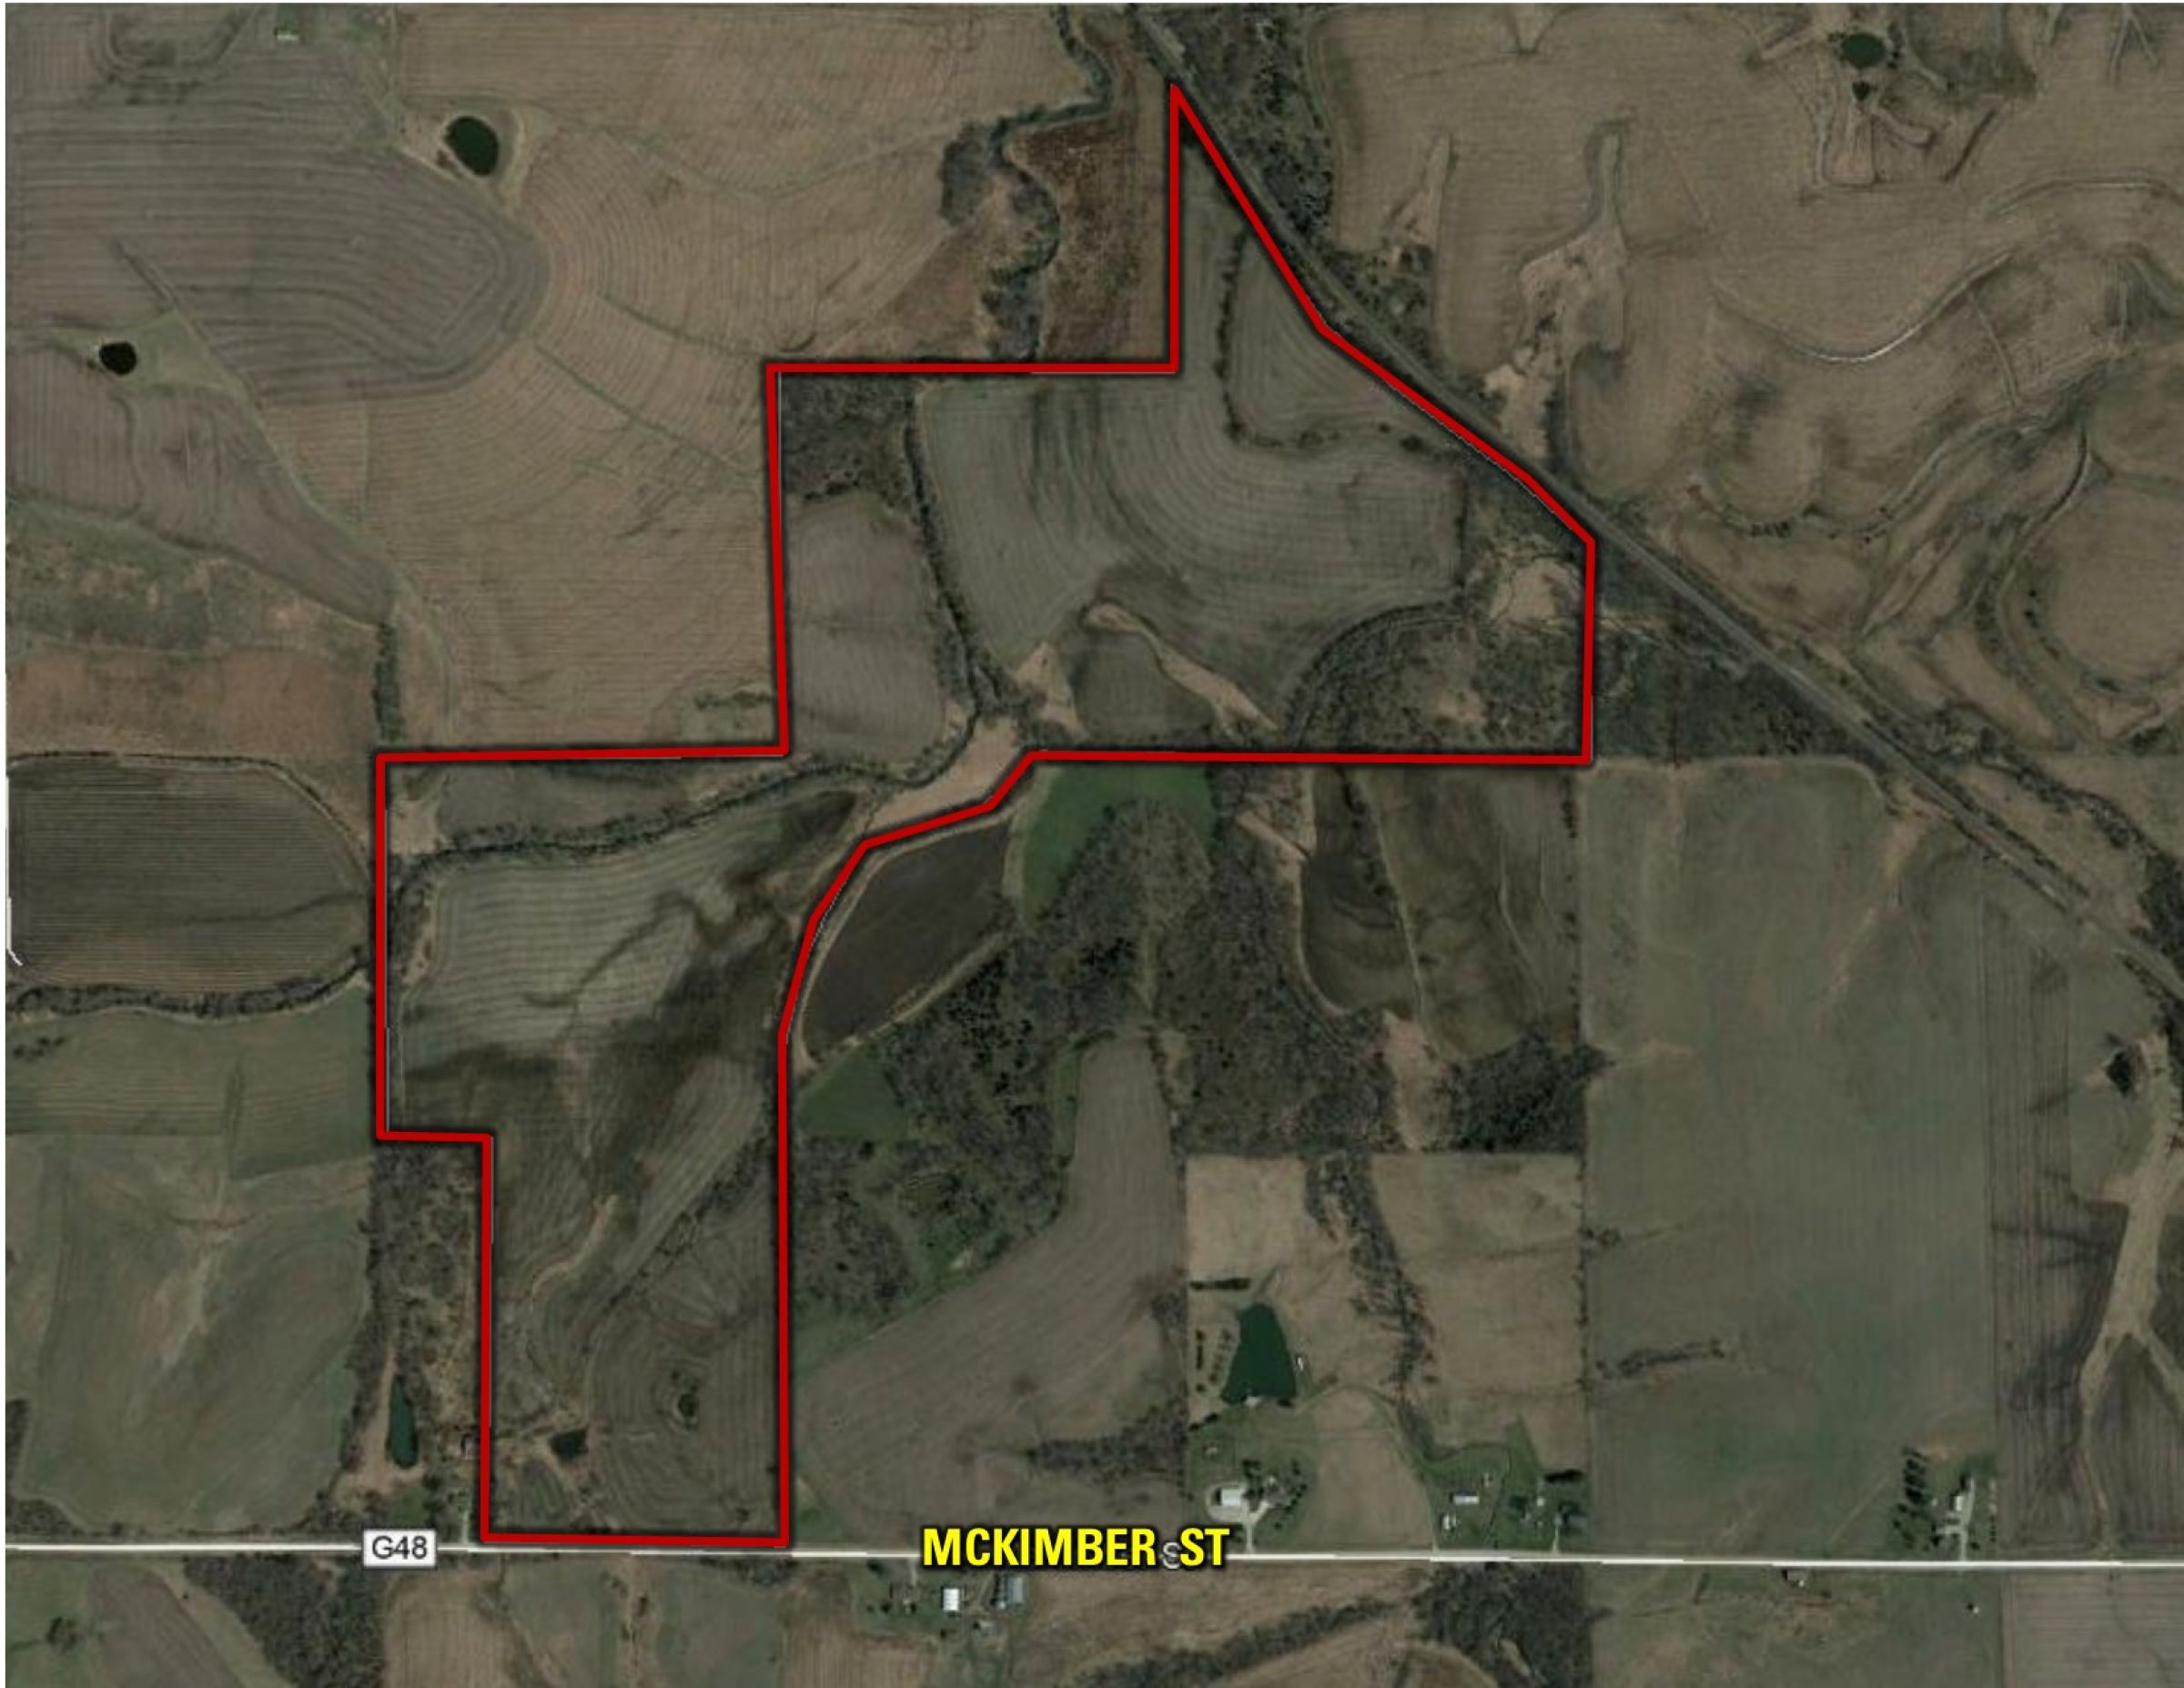 land-marion-county-iowa-163-acres-listing-number-15077-1-2020-07-17-173654.jpg